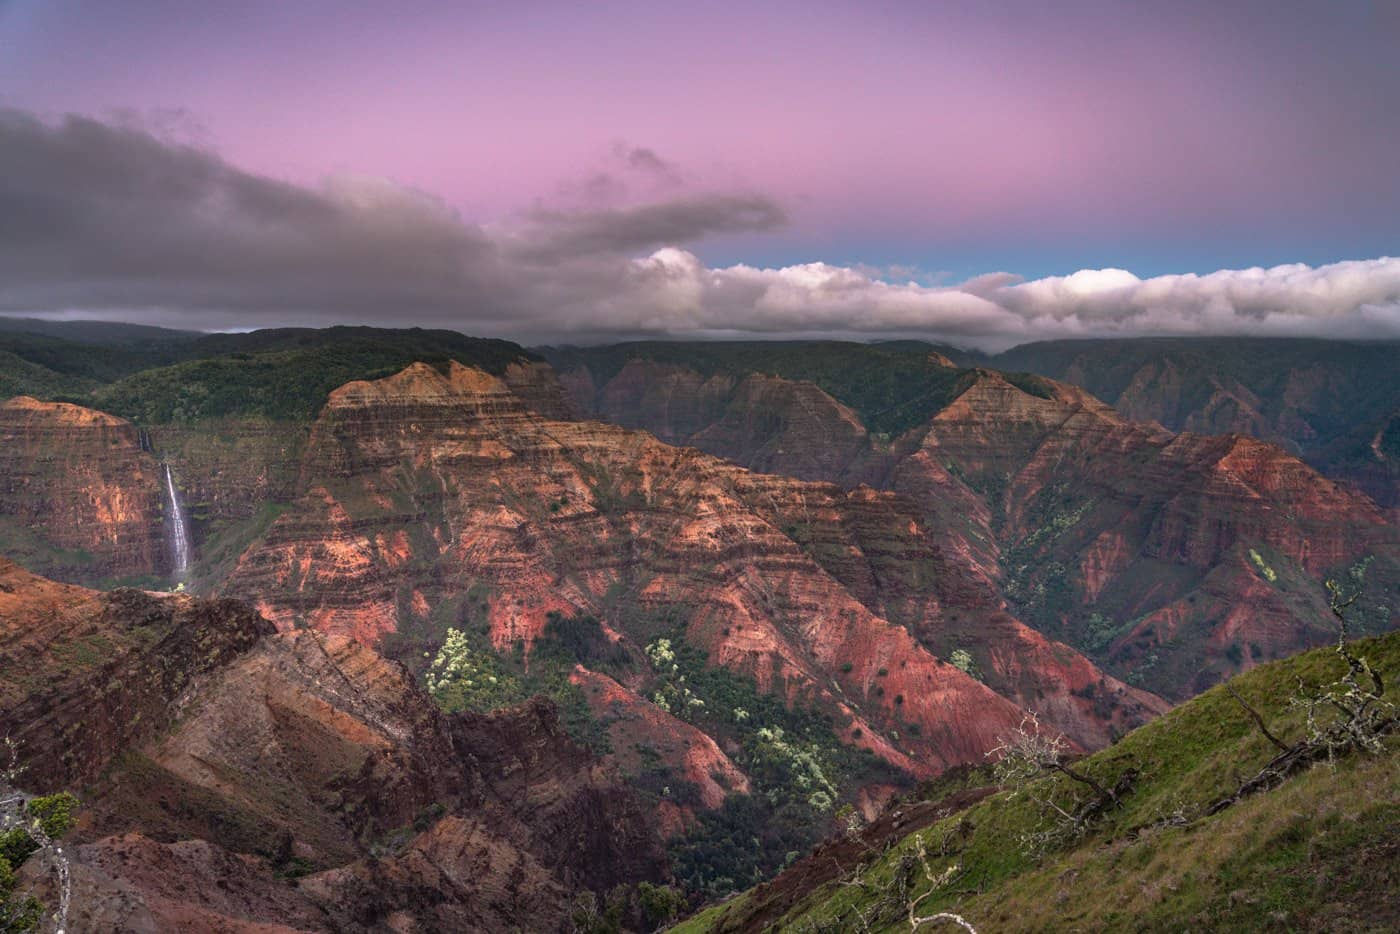 Purple skies grace Waimea Canyon just minutes after another incredible Kauai sunset.